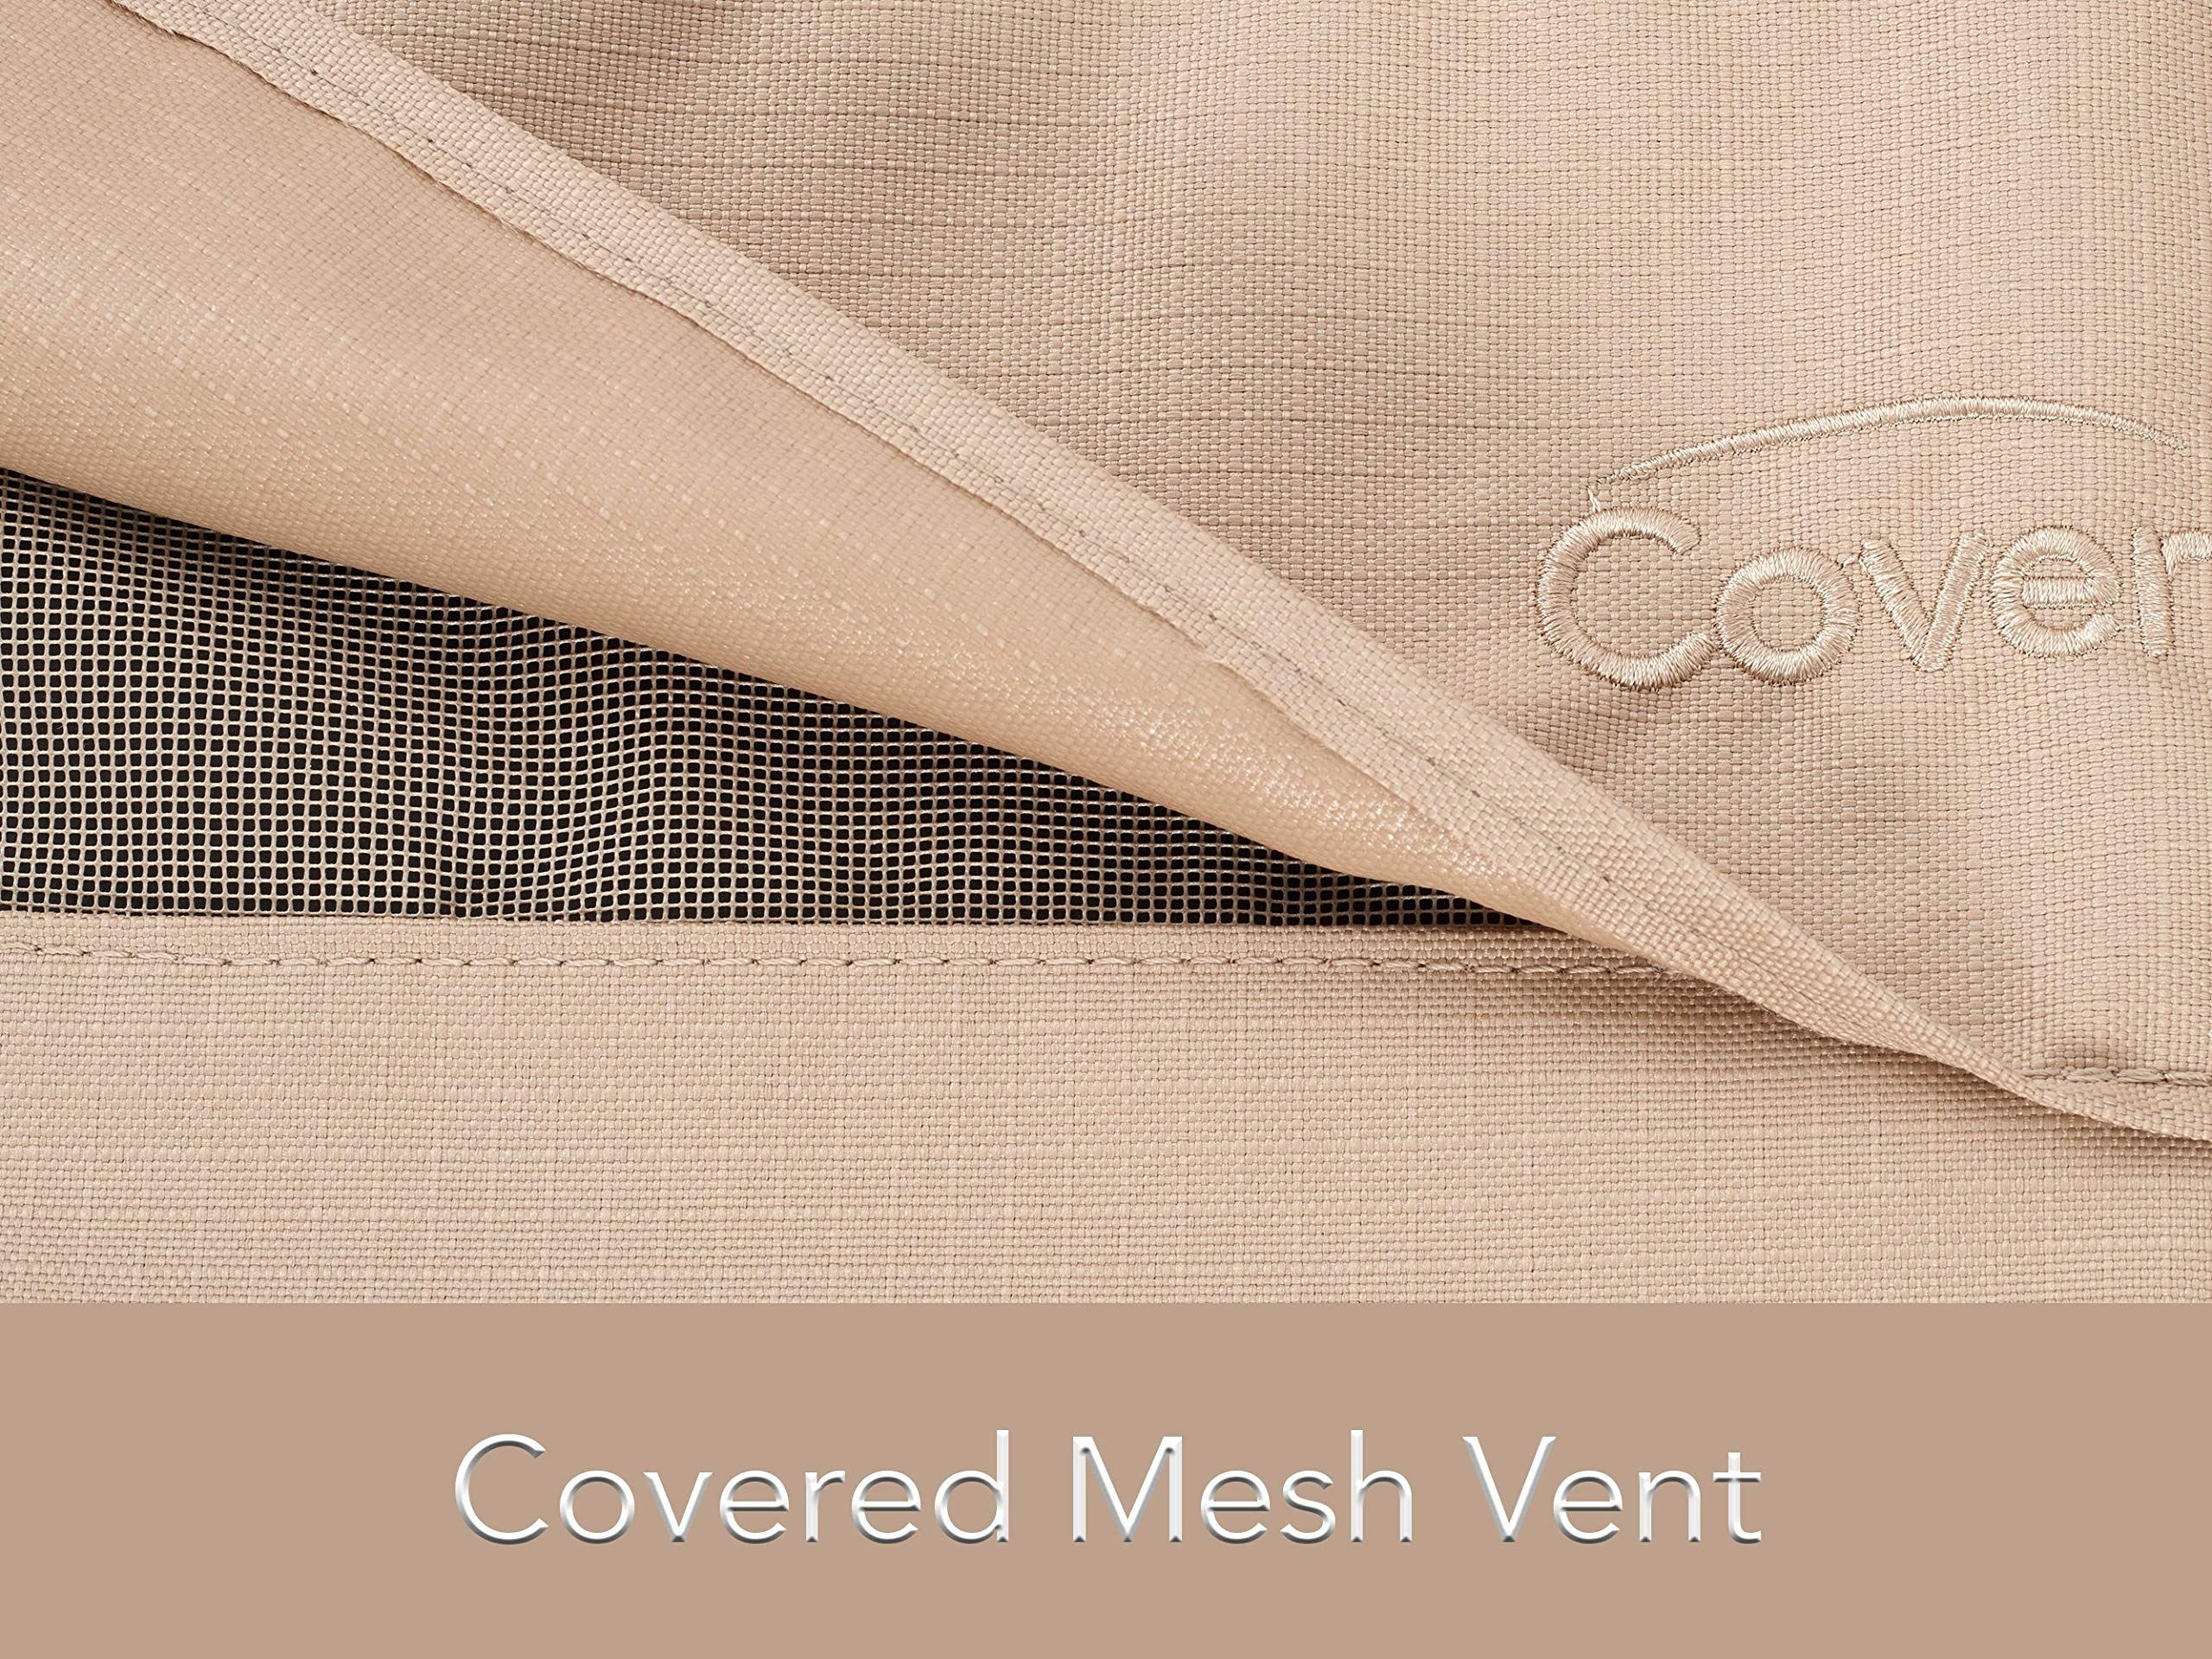 CoverMates - Outdoor Patio Bench Covers - Fits 58 in Width, 40 in Depth and 40 in Height - Ultima Ripstop - 600D Fade Resistant Poly - Breathable Covered Ventilation - 7 YR Warranty - Ripstop Tan by CoverMates (Image #2)